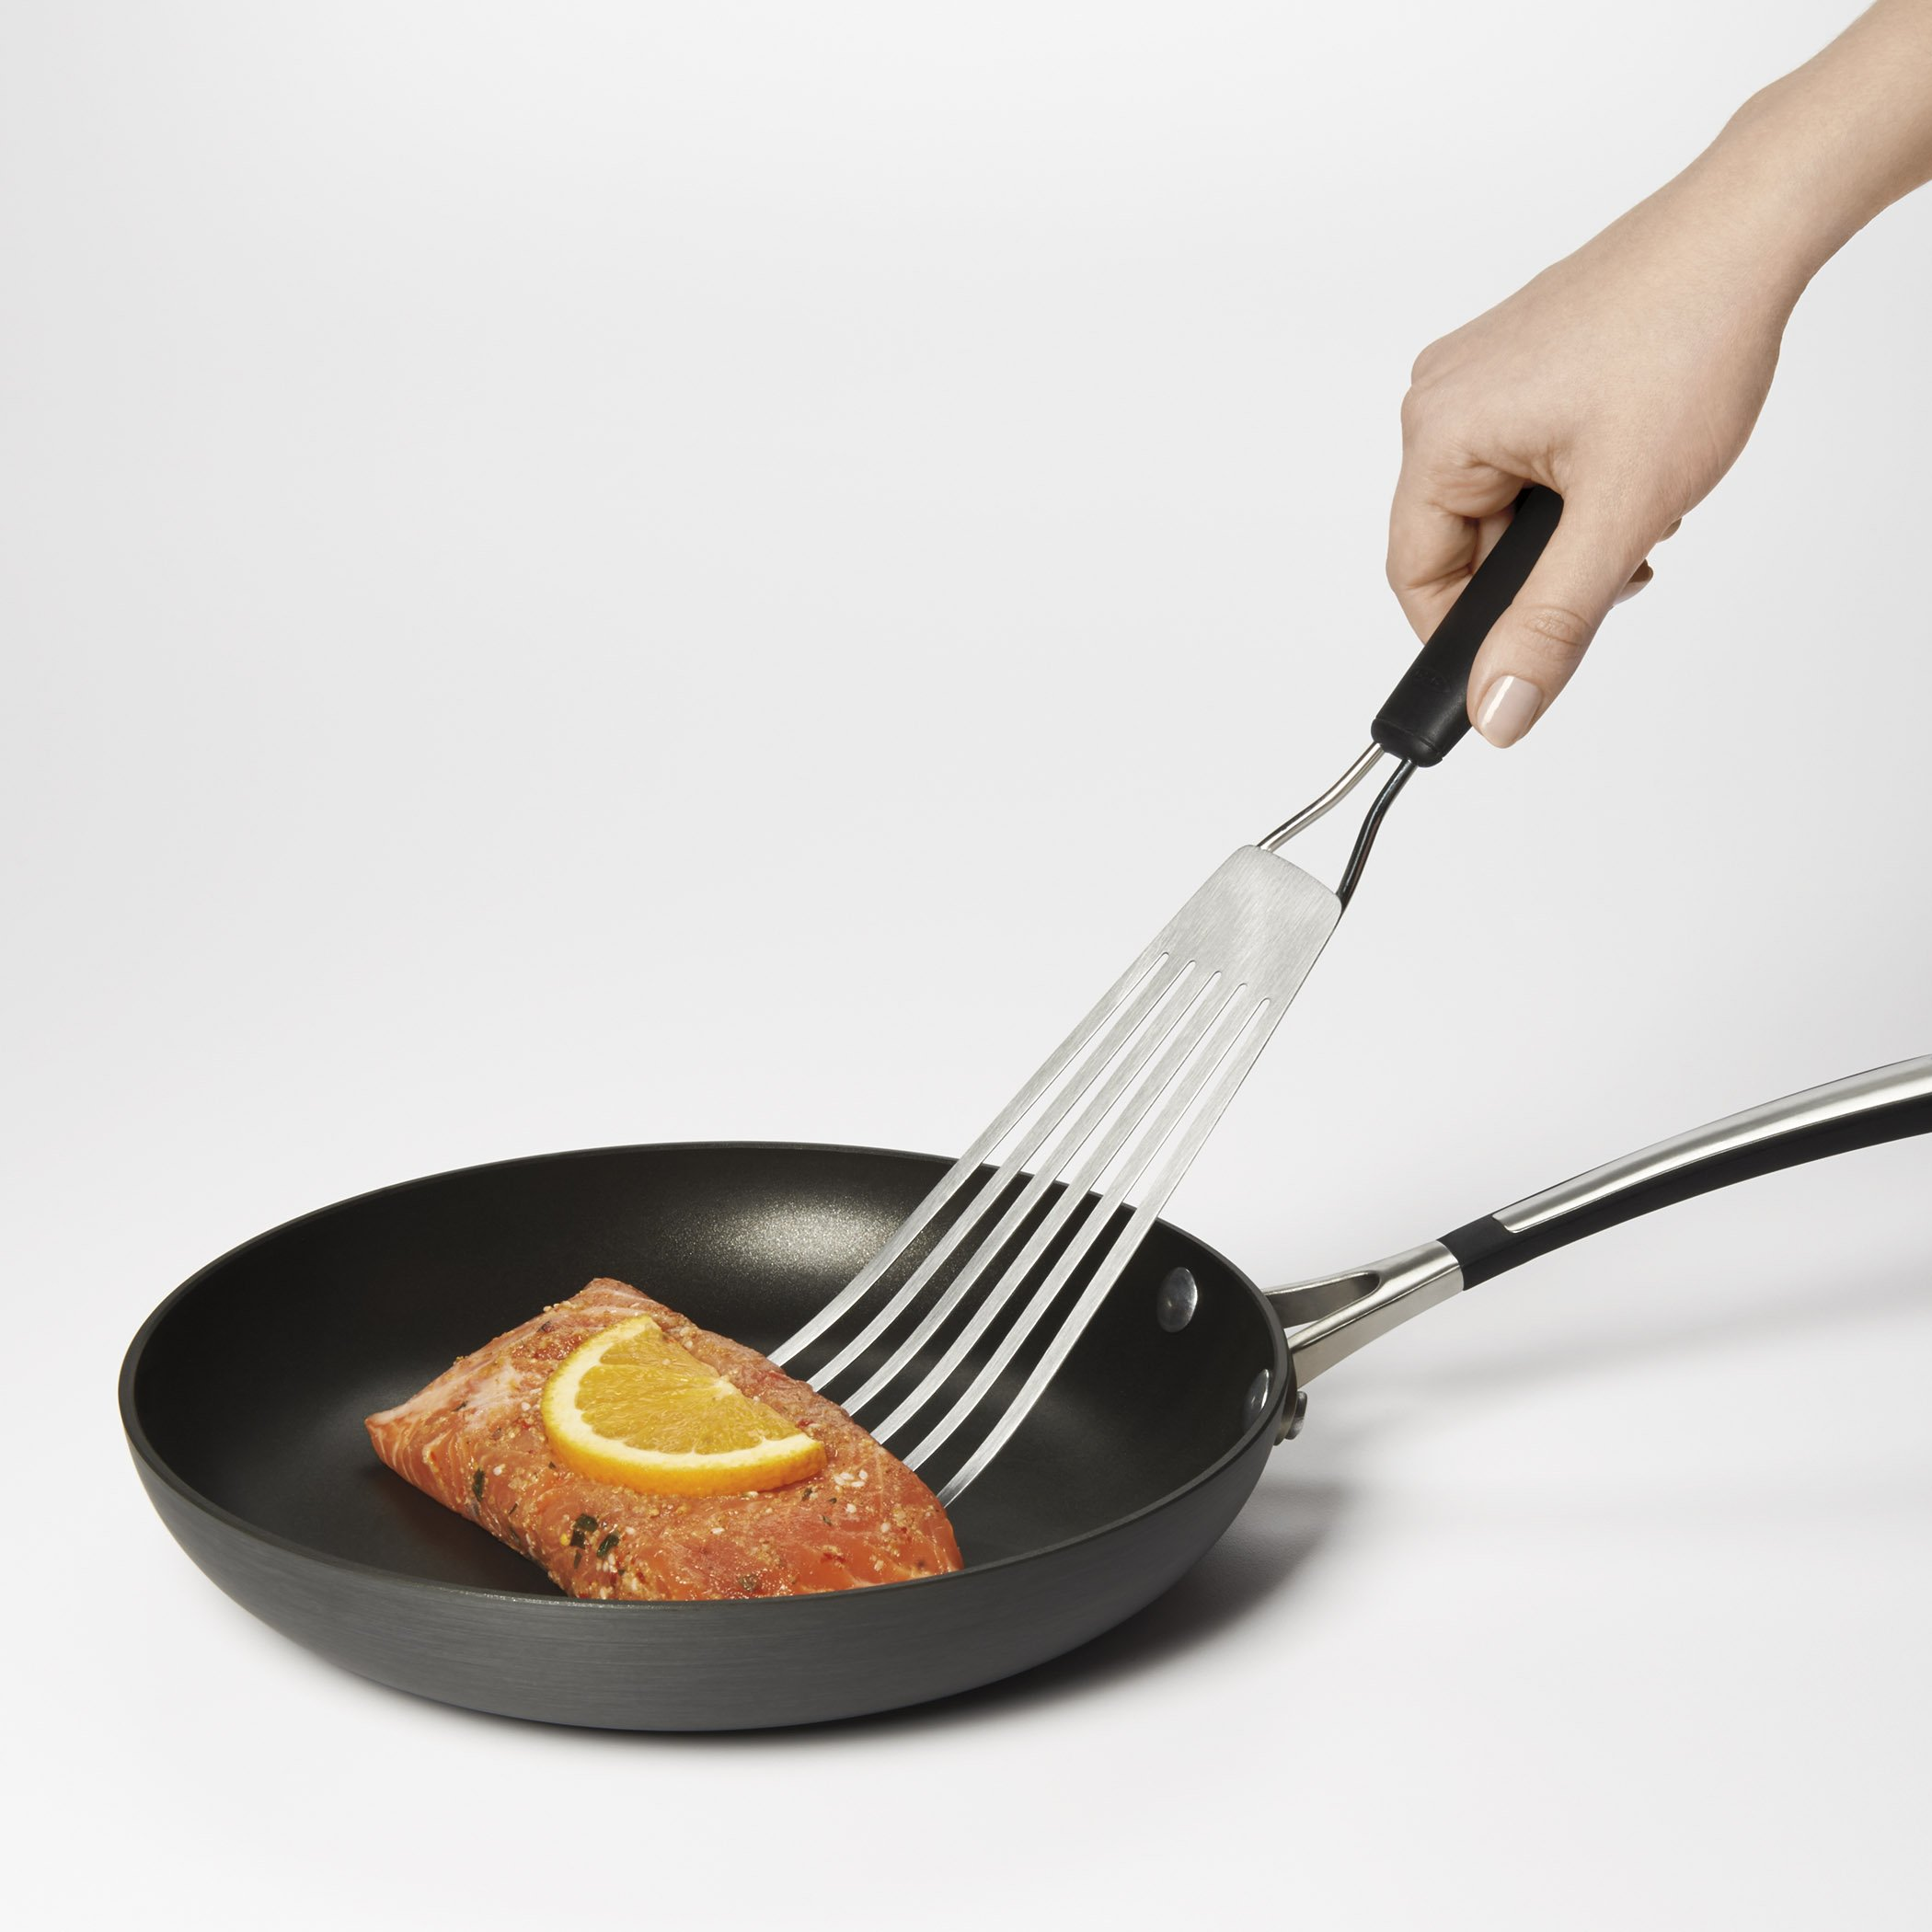 OXO Good Grips Fish Turner